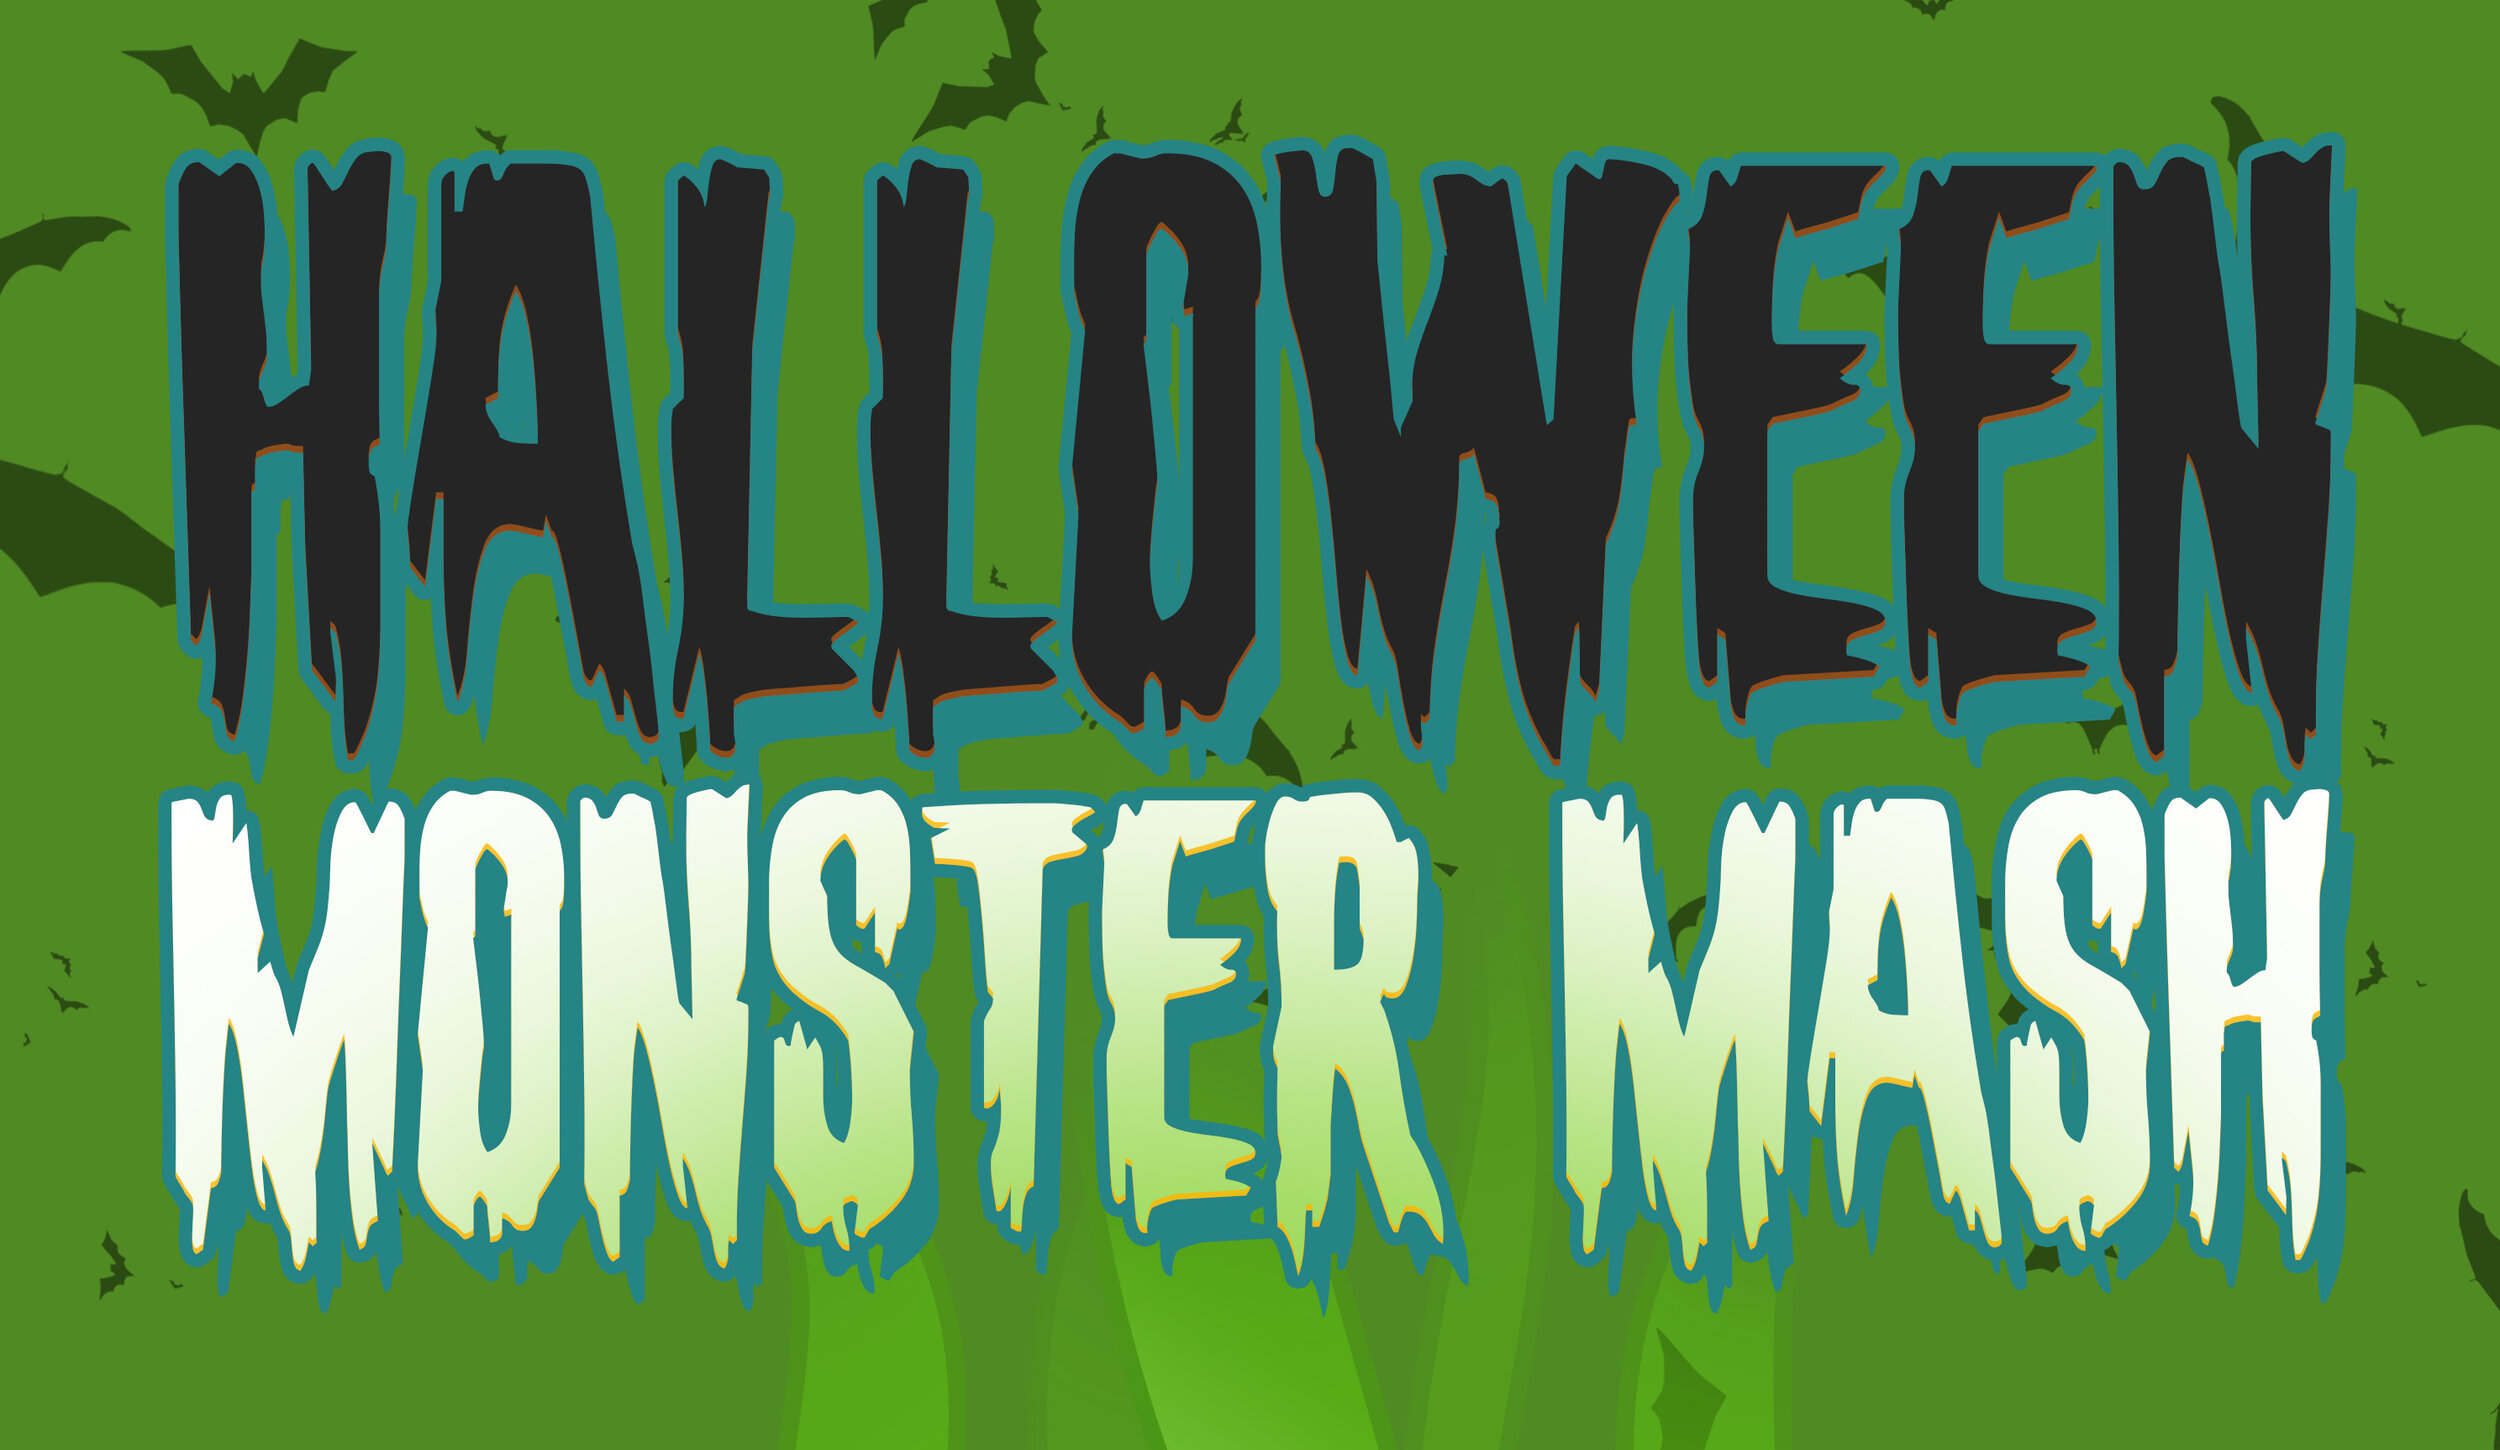 Halloween Monster Mash.jpg